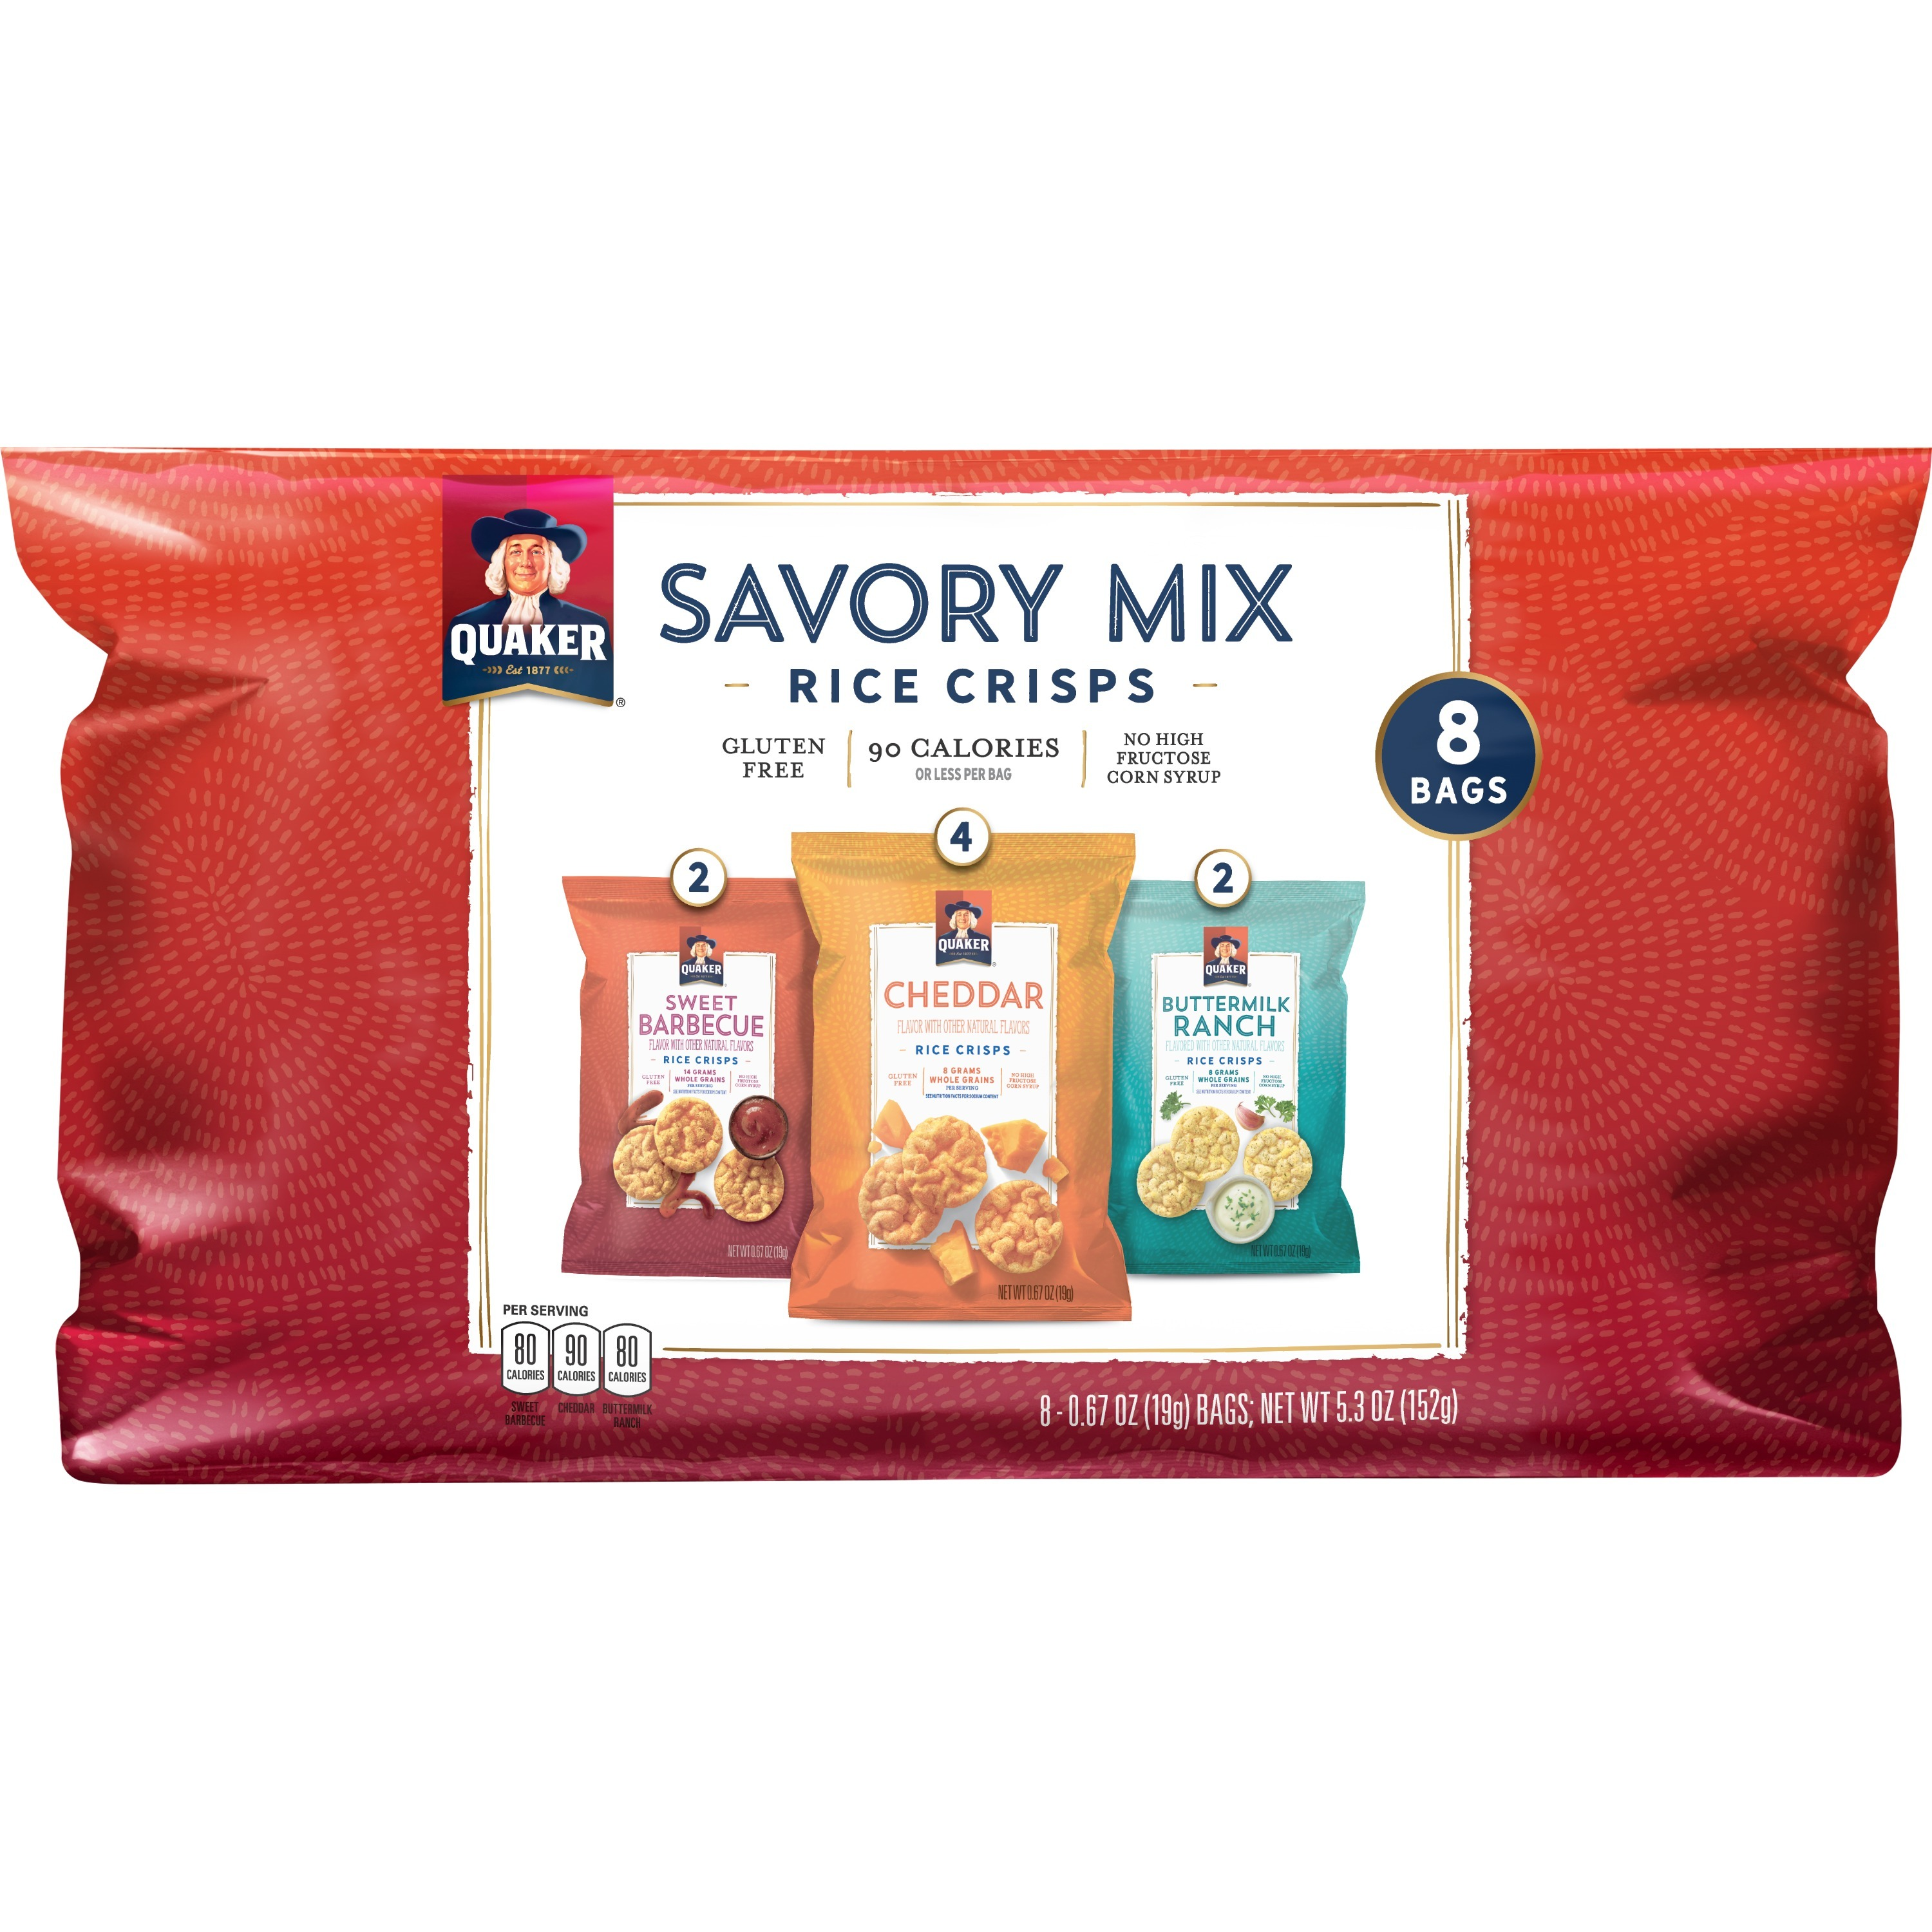 Quaker Rice Crisps, Savory Mix, 0.67 oz Bags, 8 Count (Packaging May Vary)